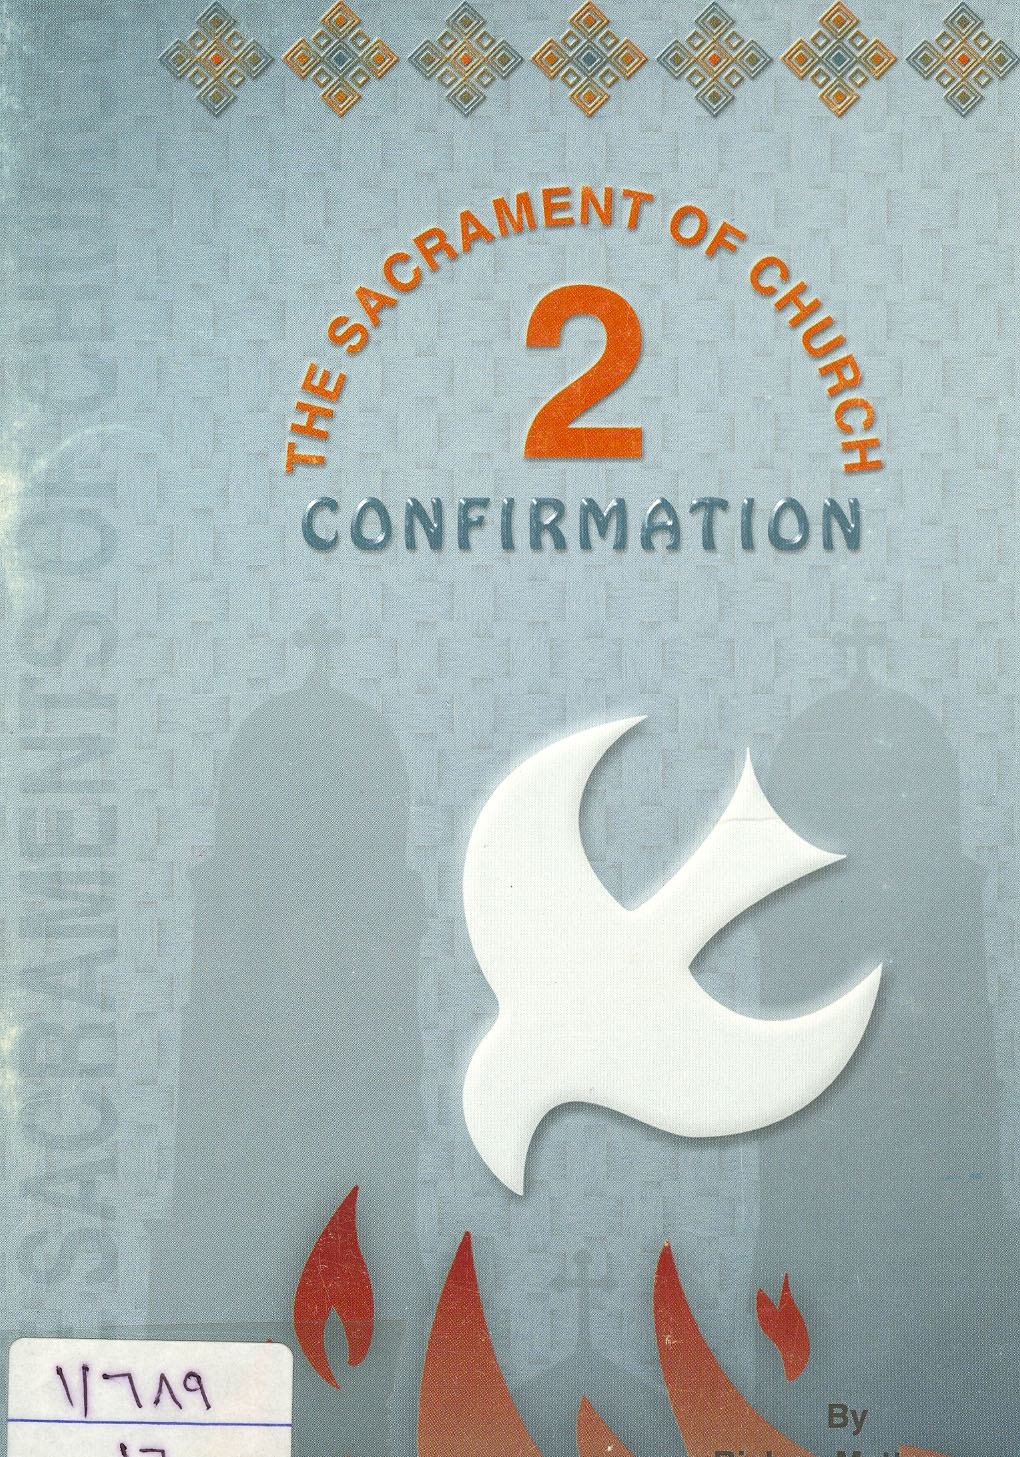 Cover of SACRAMENT OF CONFIRMATION